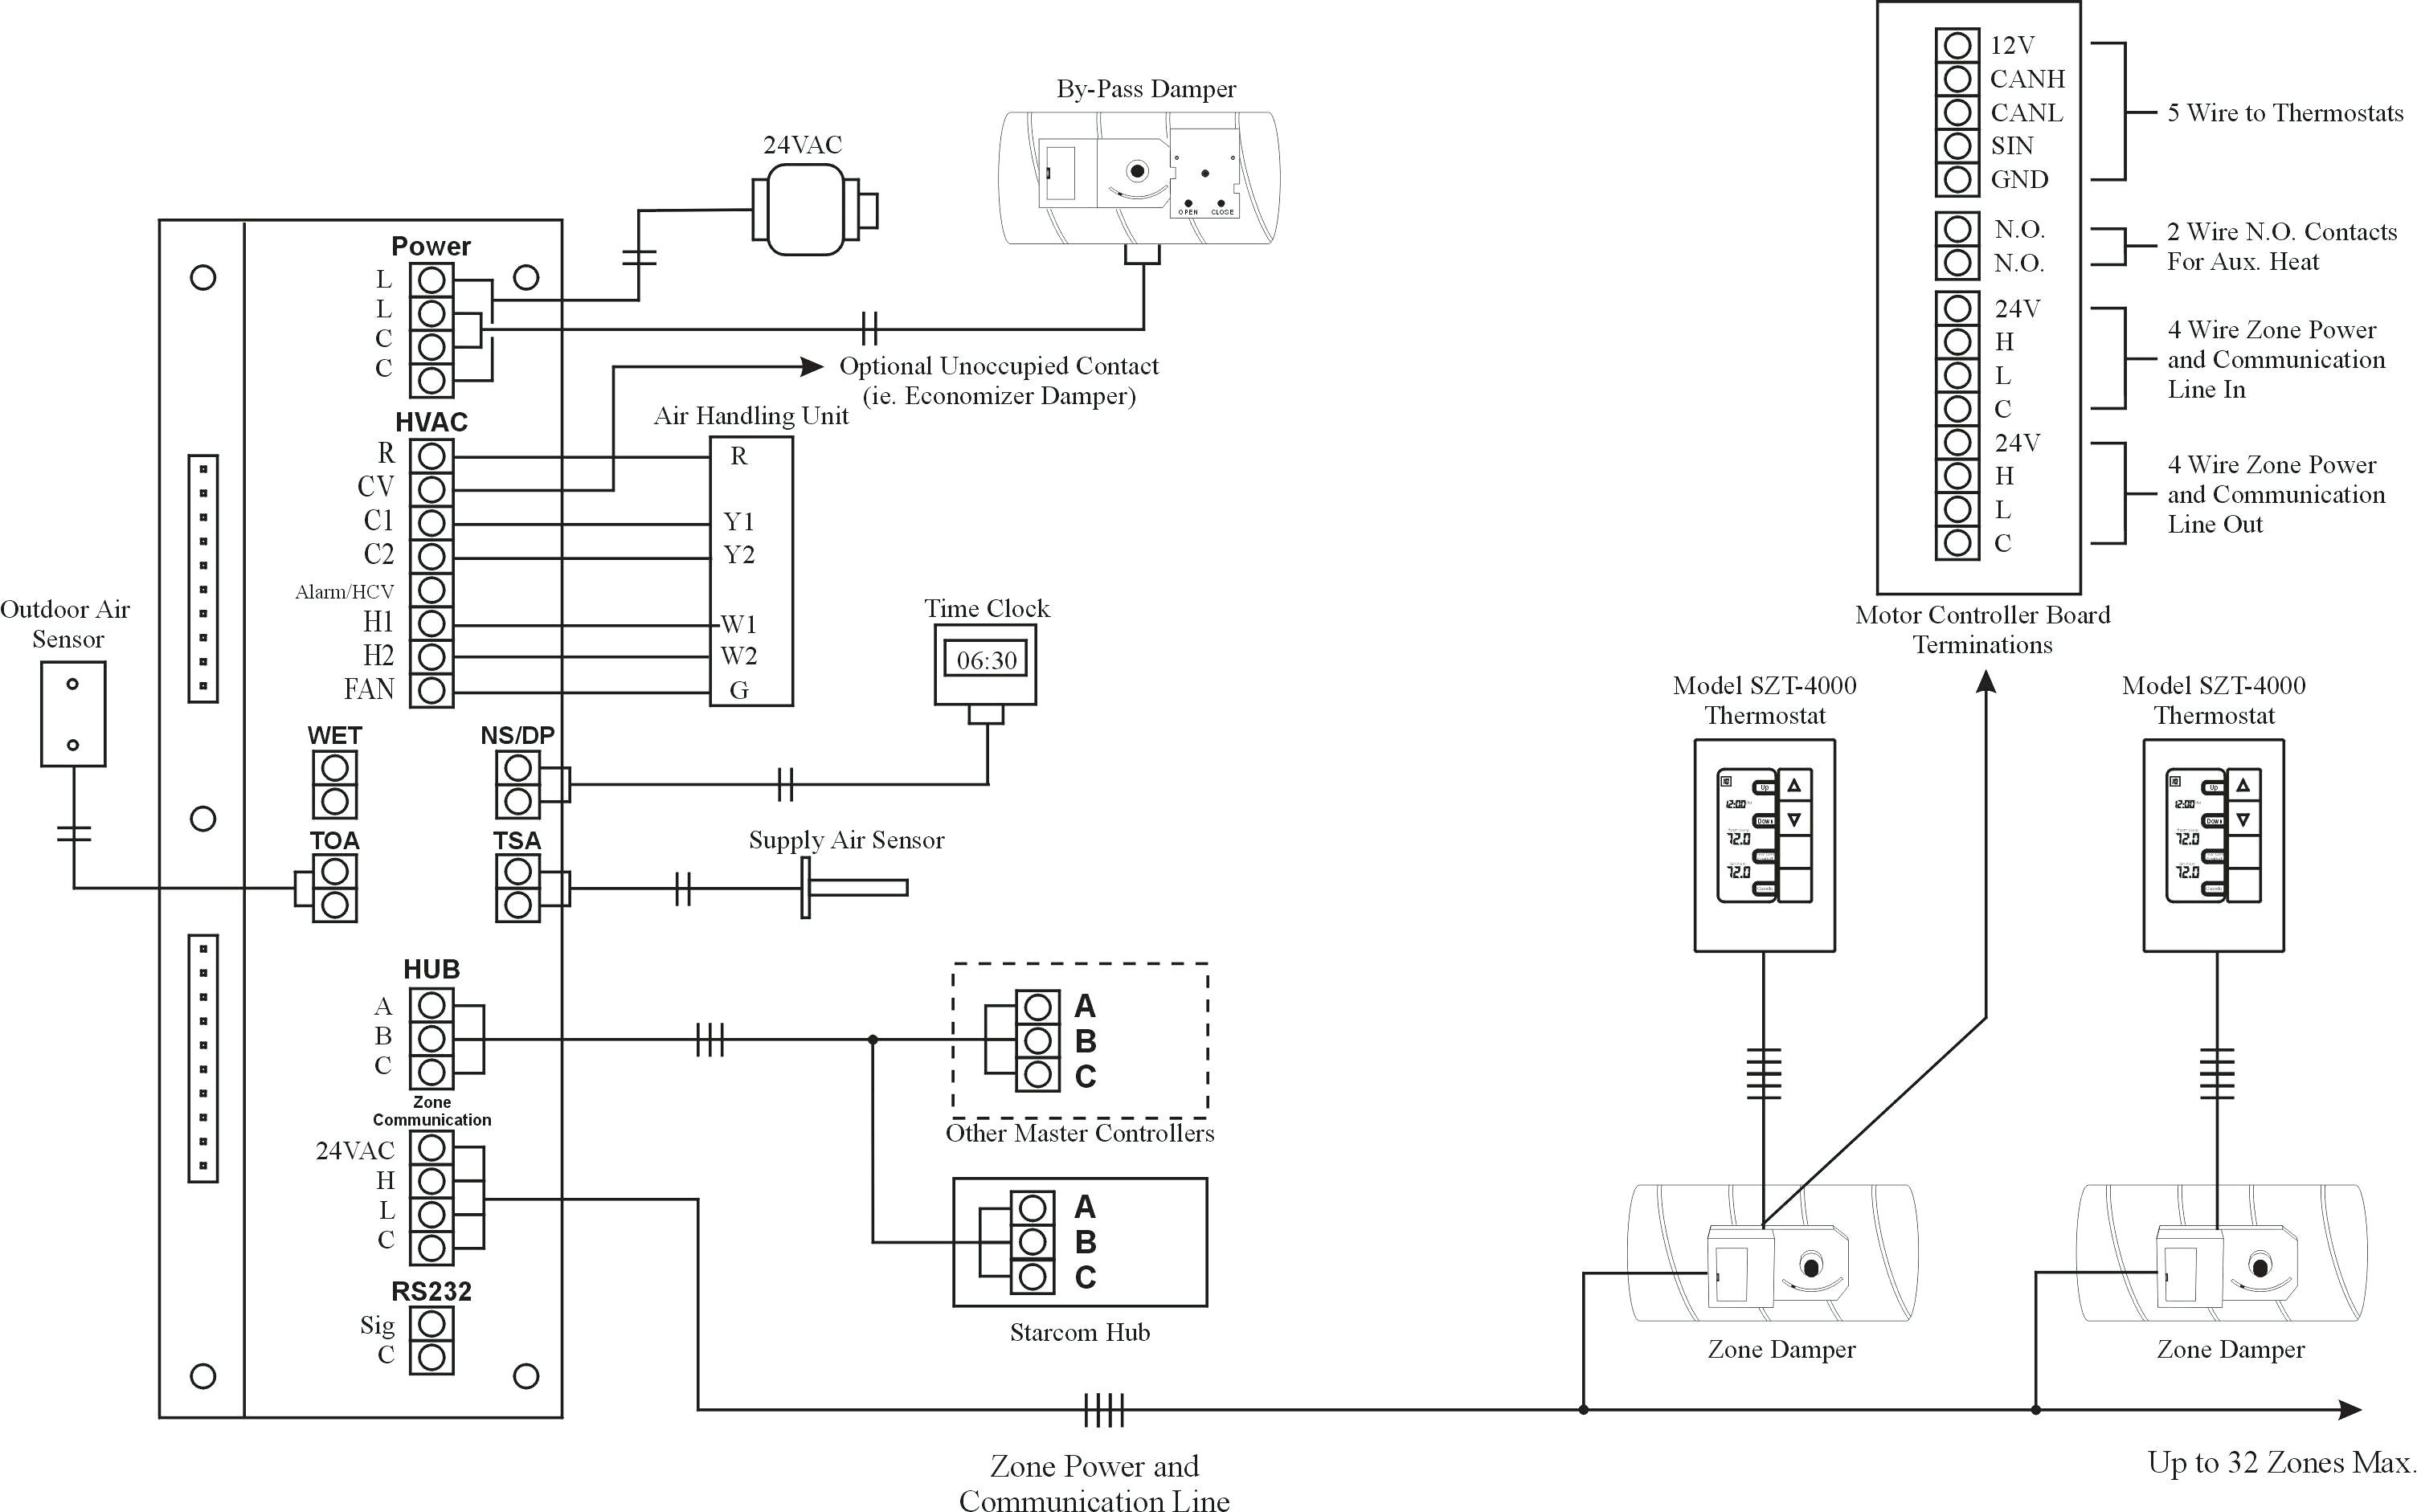 5 Wire Ac Proximity Switch Diagram | Online Wiring Diagram  Diagram Wire Proximity Wiring on 4 wire electrical wiring, 4 wire arduino diagram, 4 wire solenoid, 4 wire circuit, 4 wire cable, 4 wire generator, 4 wire fan diagram, 4 wire plug, 4 wire compressor, 4 wire furnace diagram, 4 wire headlight, 4 wire alternator, 4 wire relay, 4 wire regulator, 4 wire trailer diagram, 4 wire switch diagram, 4 wire parts, 4 wire transformer, 4-way circuit diagram, 4 wire coil,